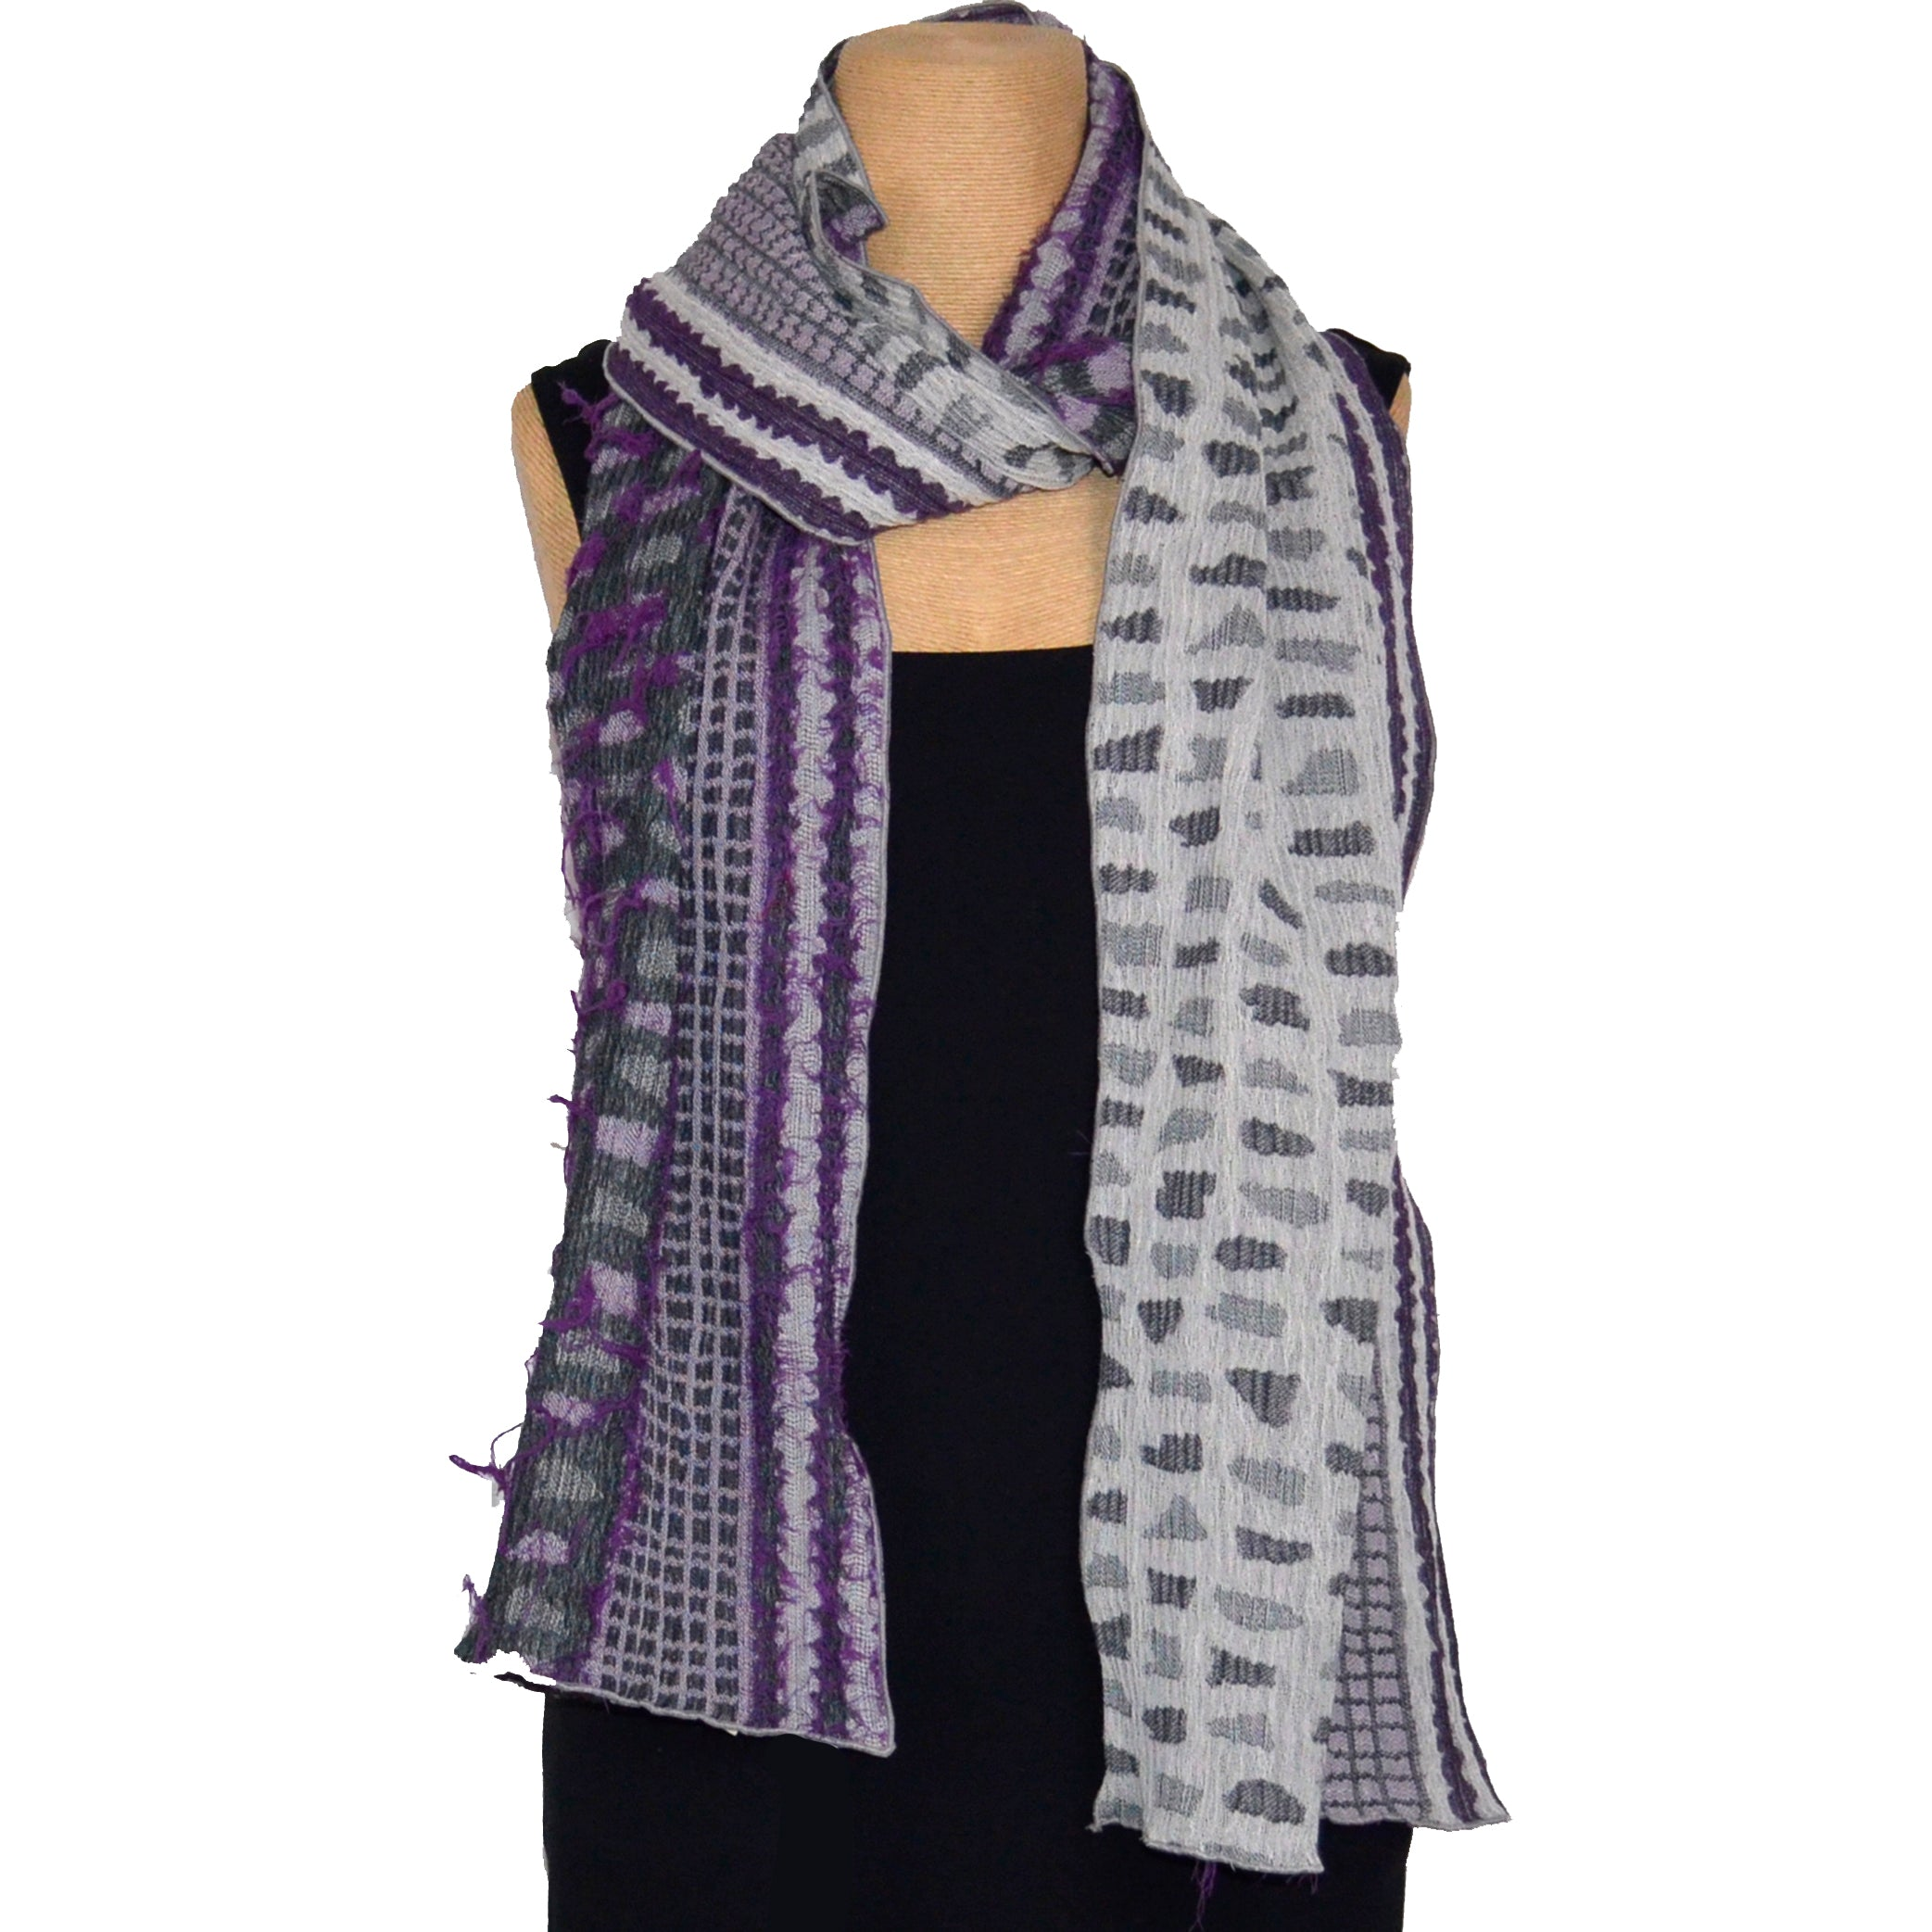 Nuno Shawl, Half Size, Shards, Purple Mix